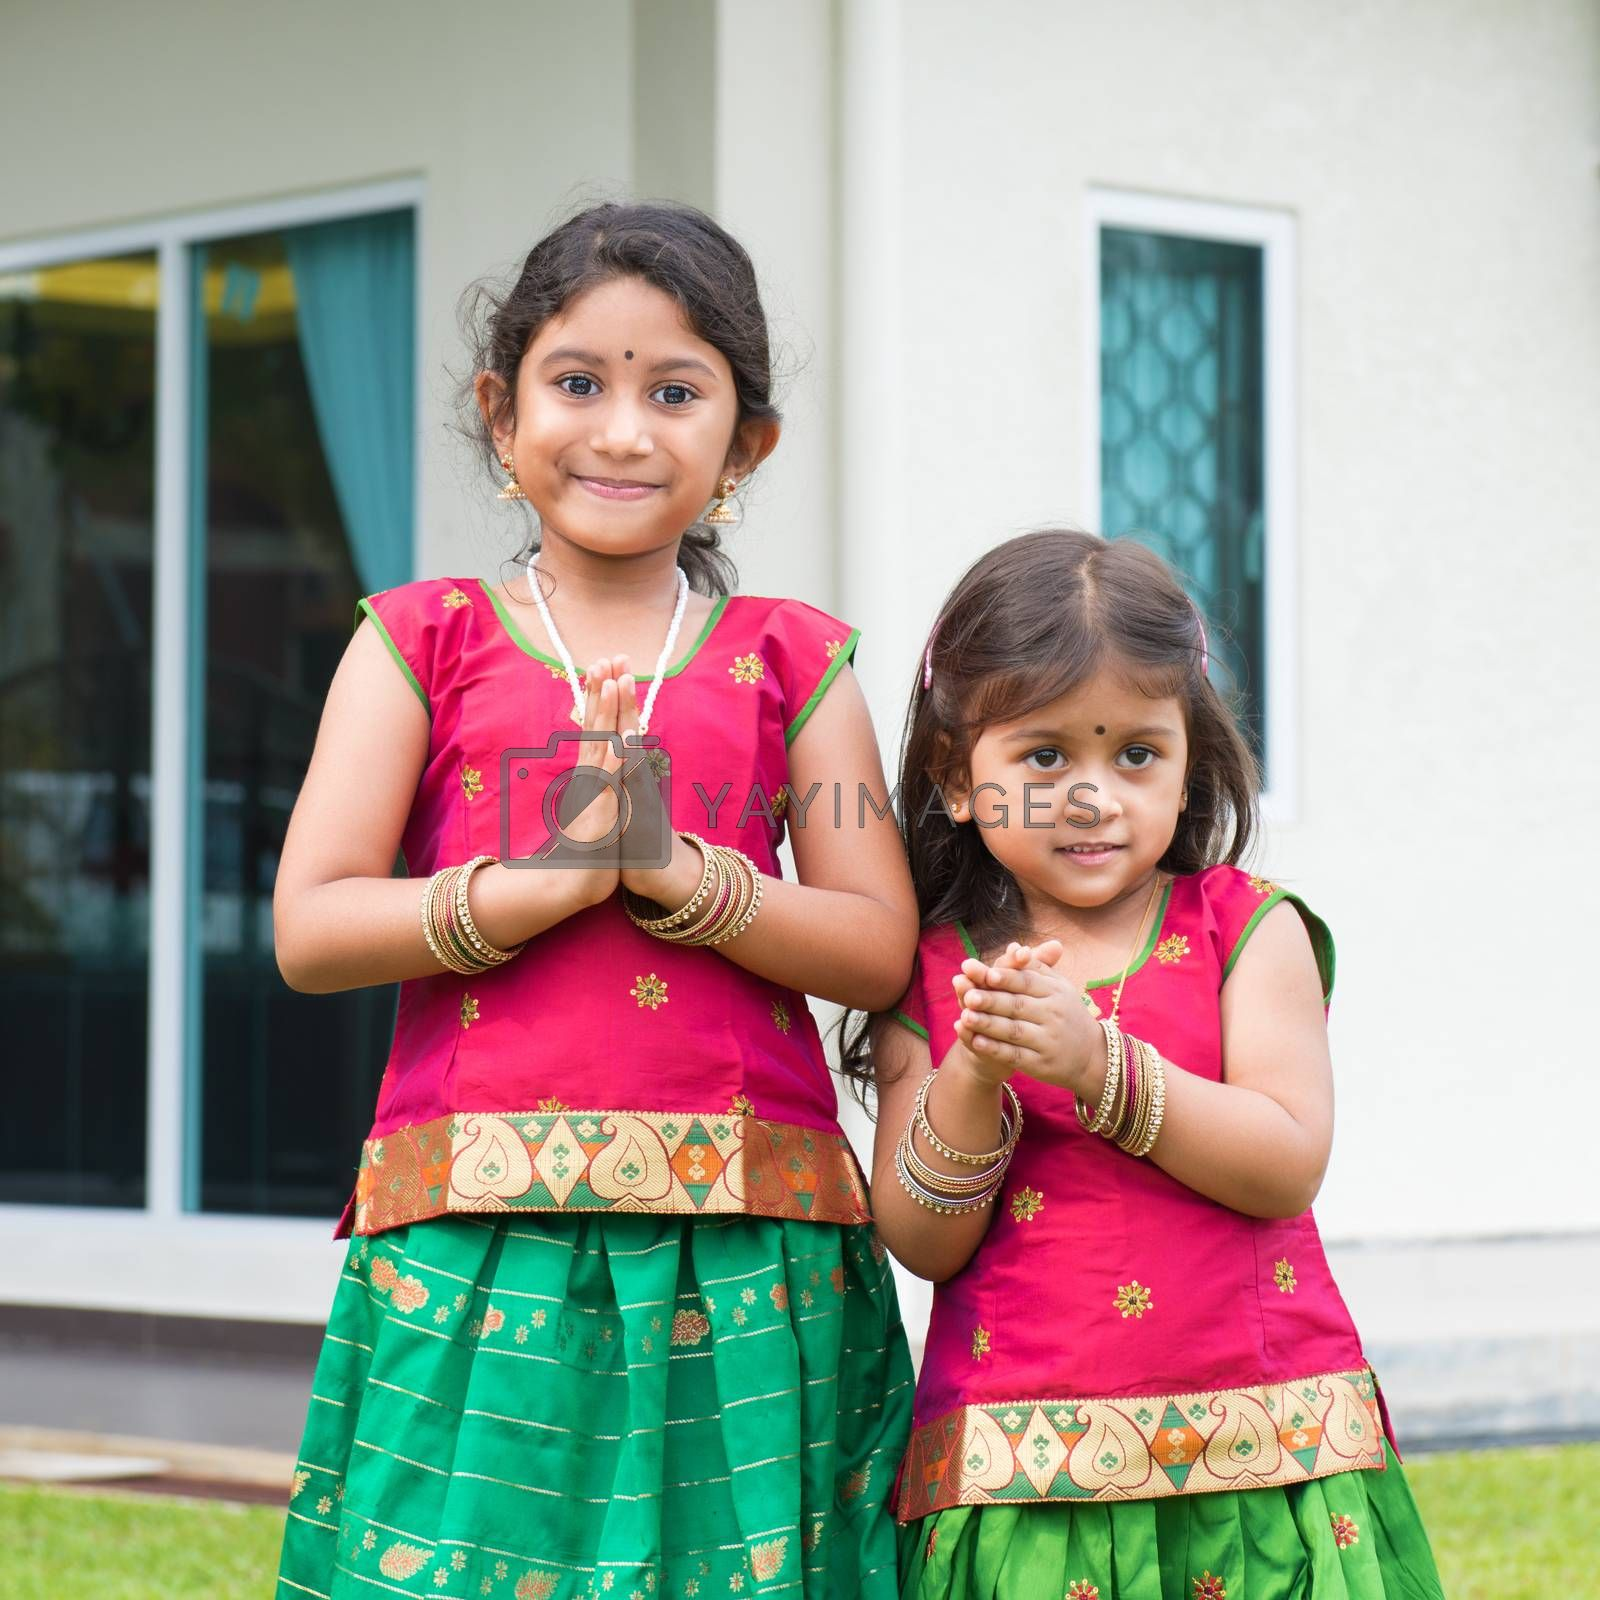 Cute Indian girls dressed in sari with folded hands representing traditional Indian greeting, standing outside their new house celebrating diwali, festival of lights.